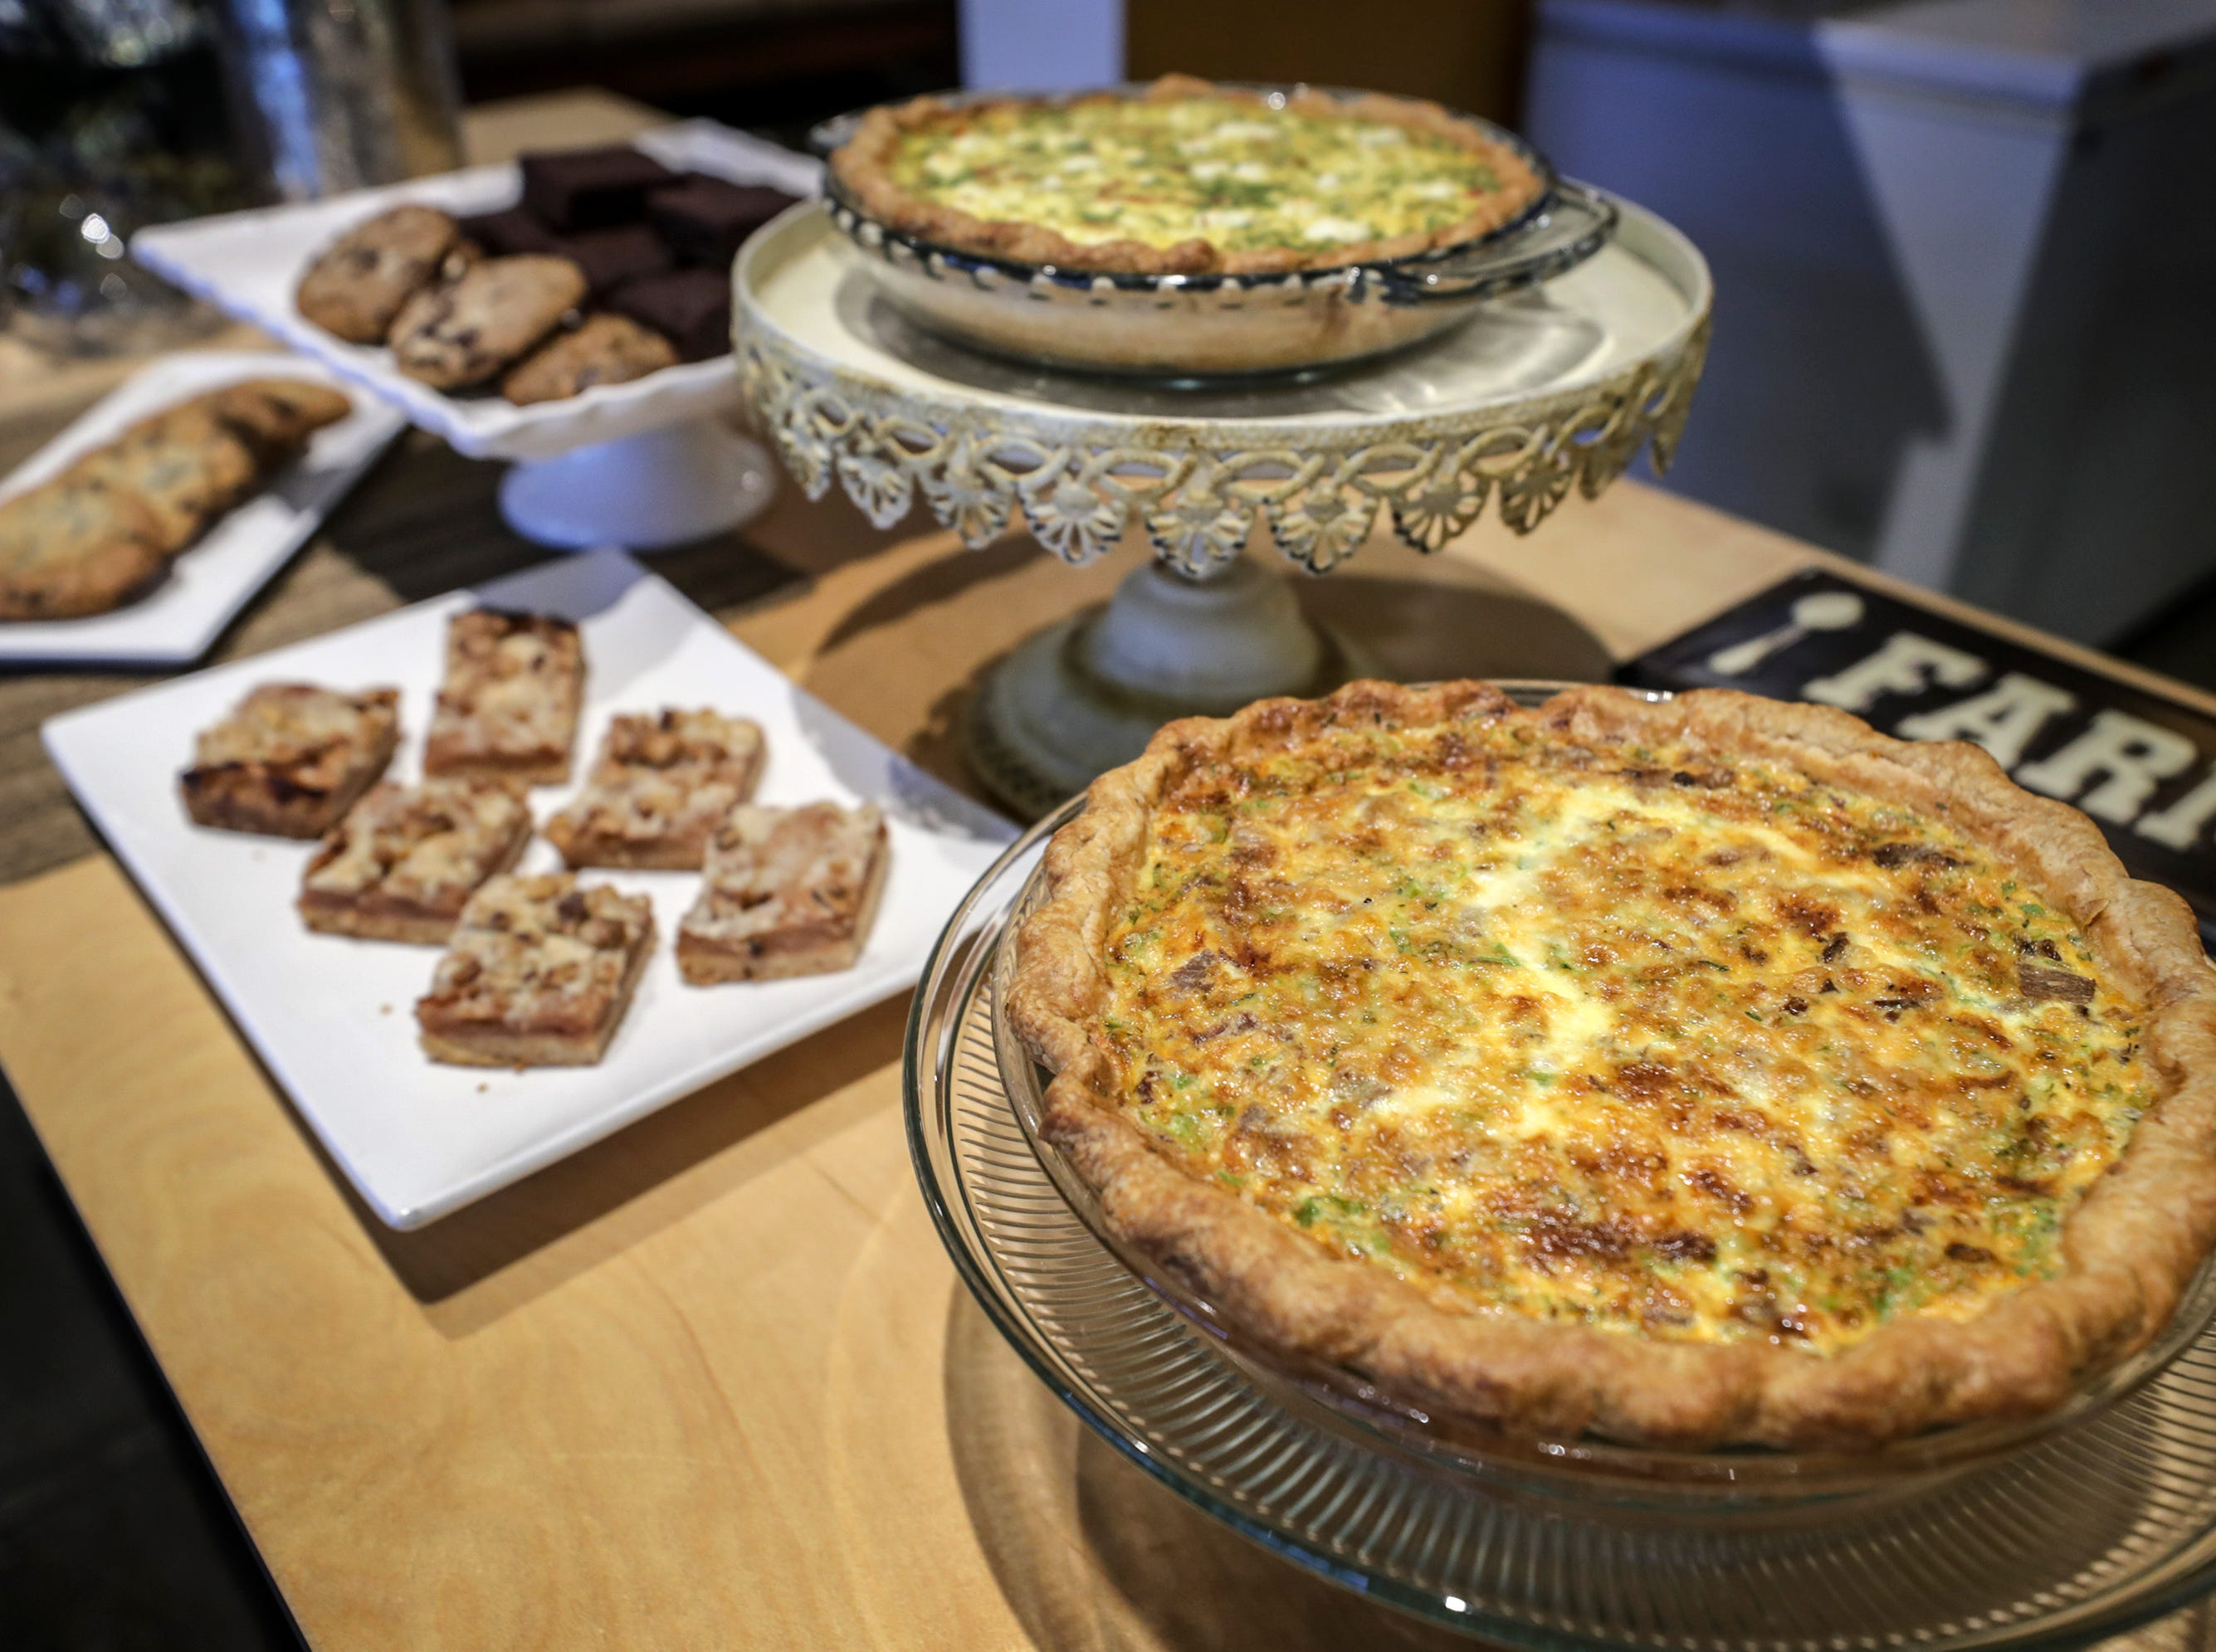 Some of the offerings at Farm To Fork in Portland.